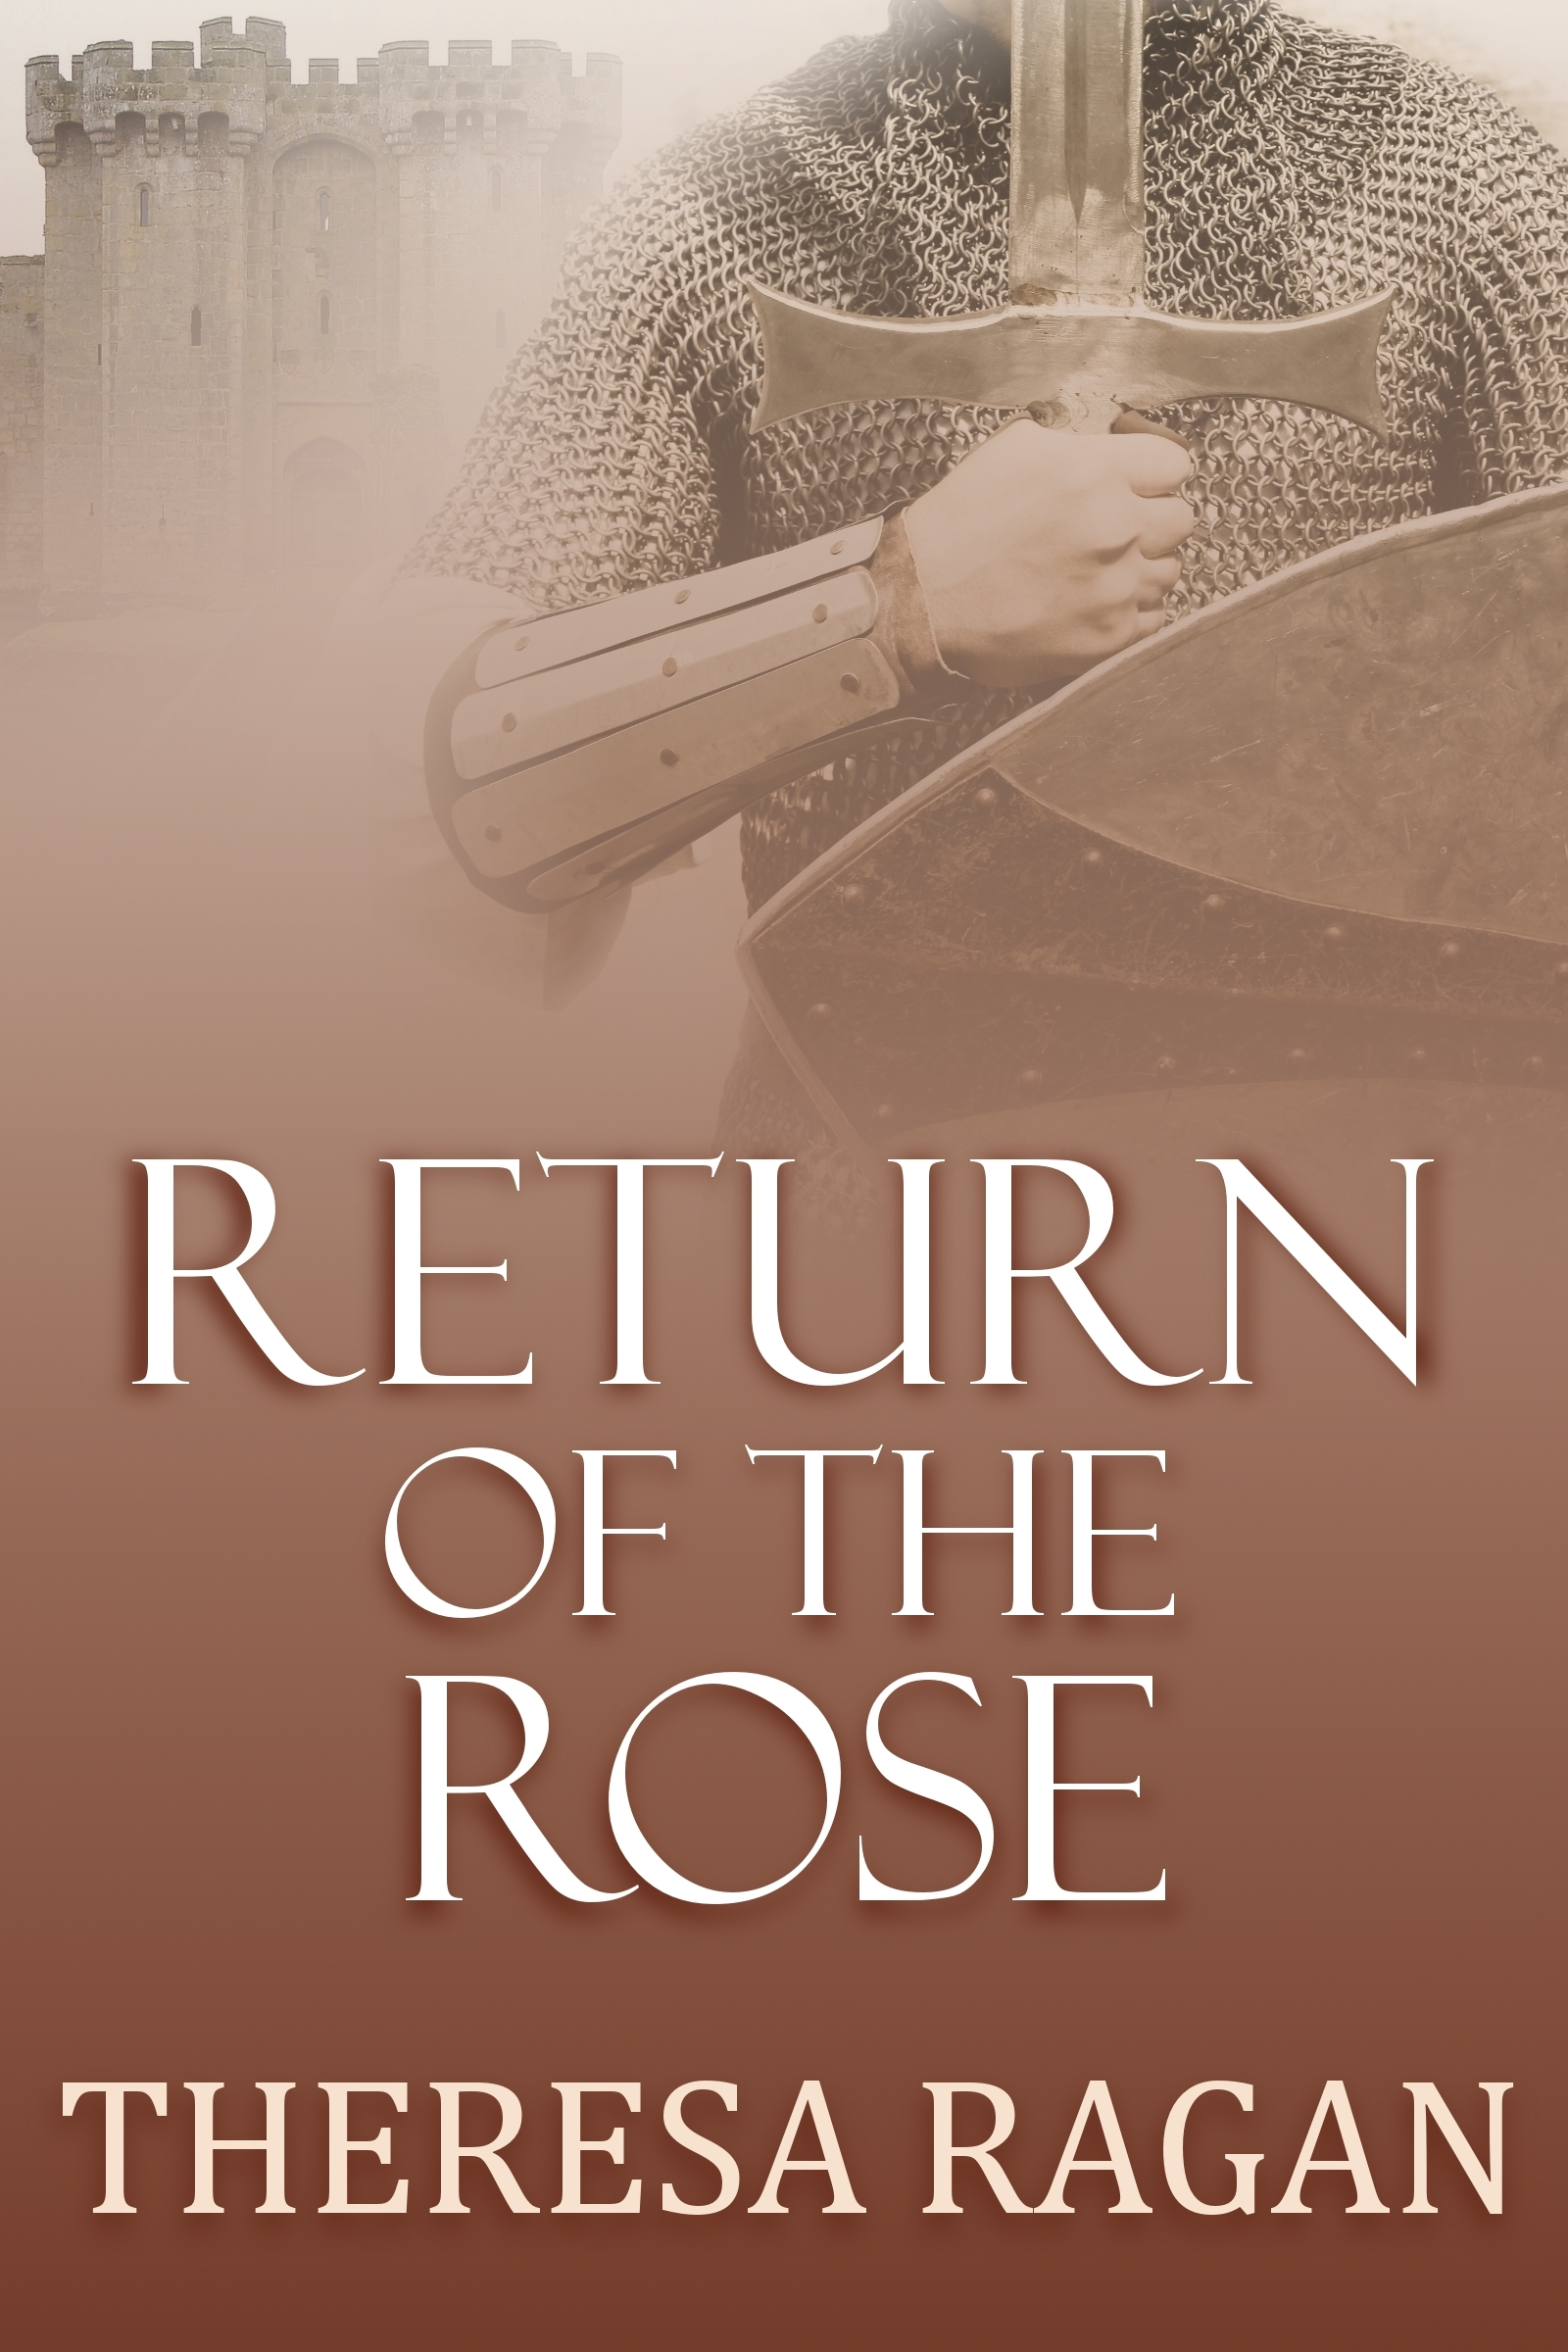 Return of the Rose By: Theresa Ragan